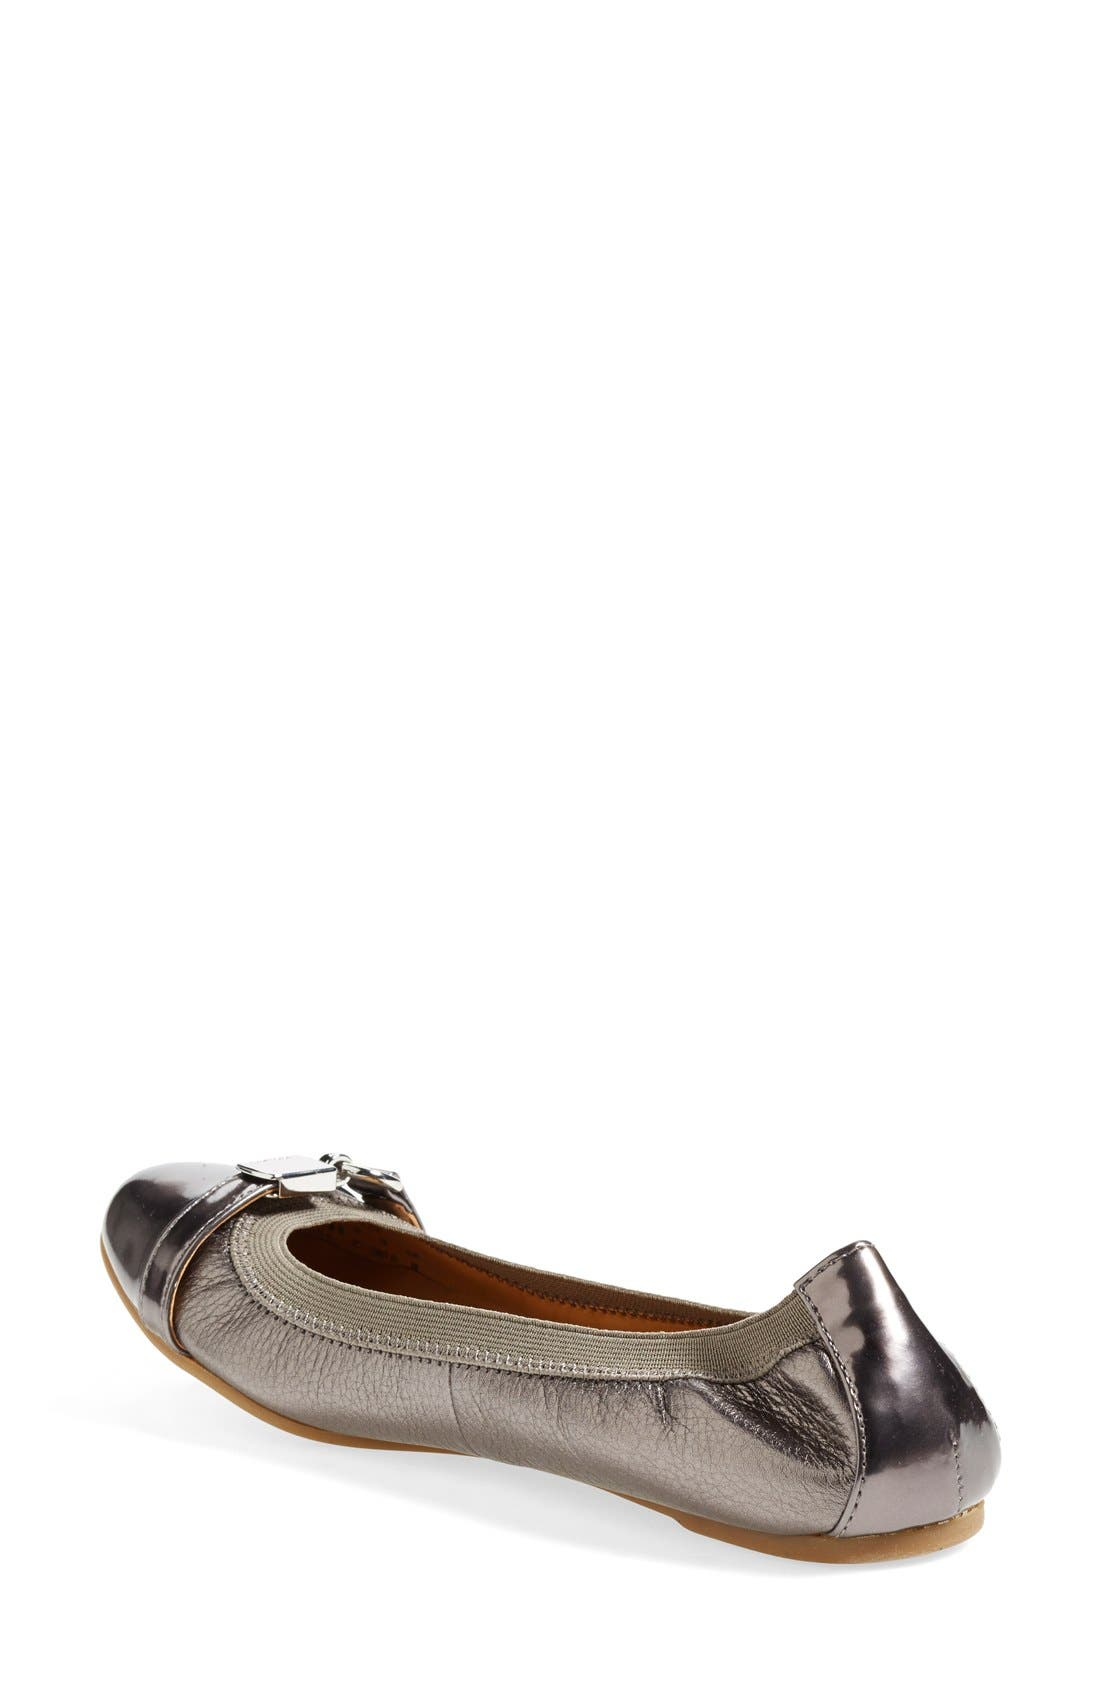 Alternate Image 2  - COACH 'Dolce' Flat (Women)